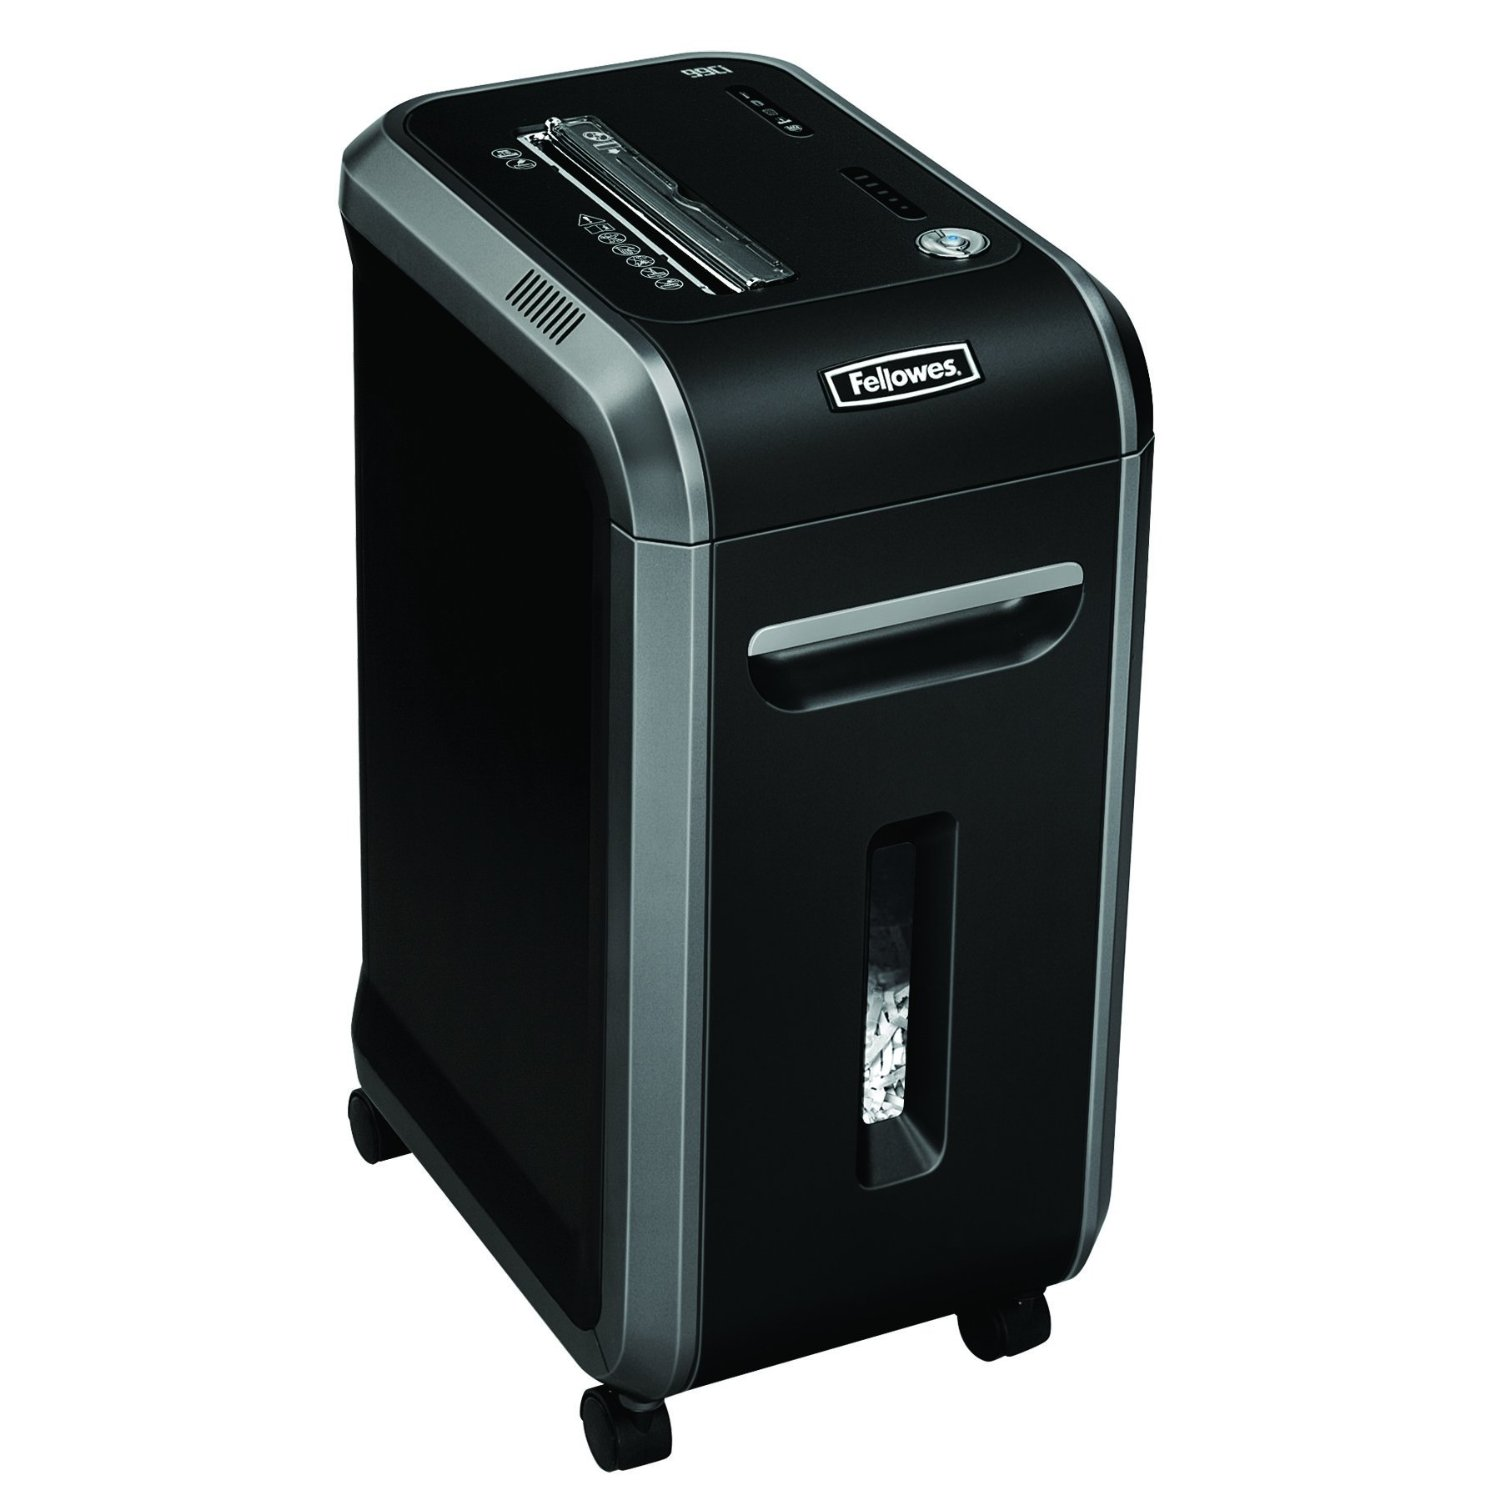 Fellowes 99Ci – Mejor Trituradora de papel profesional